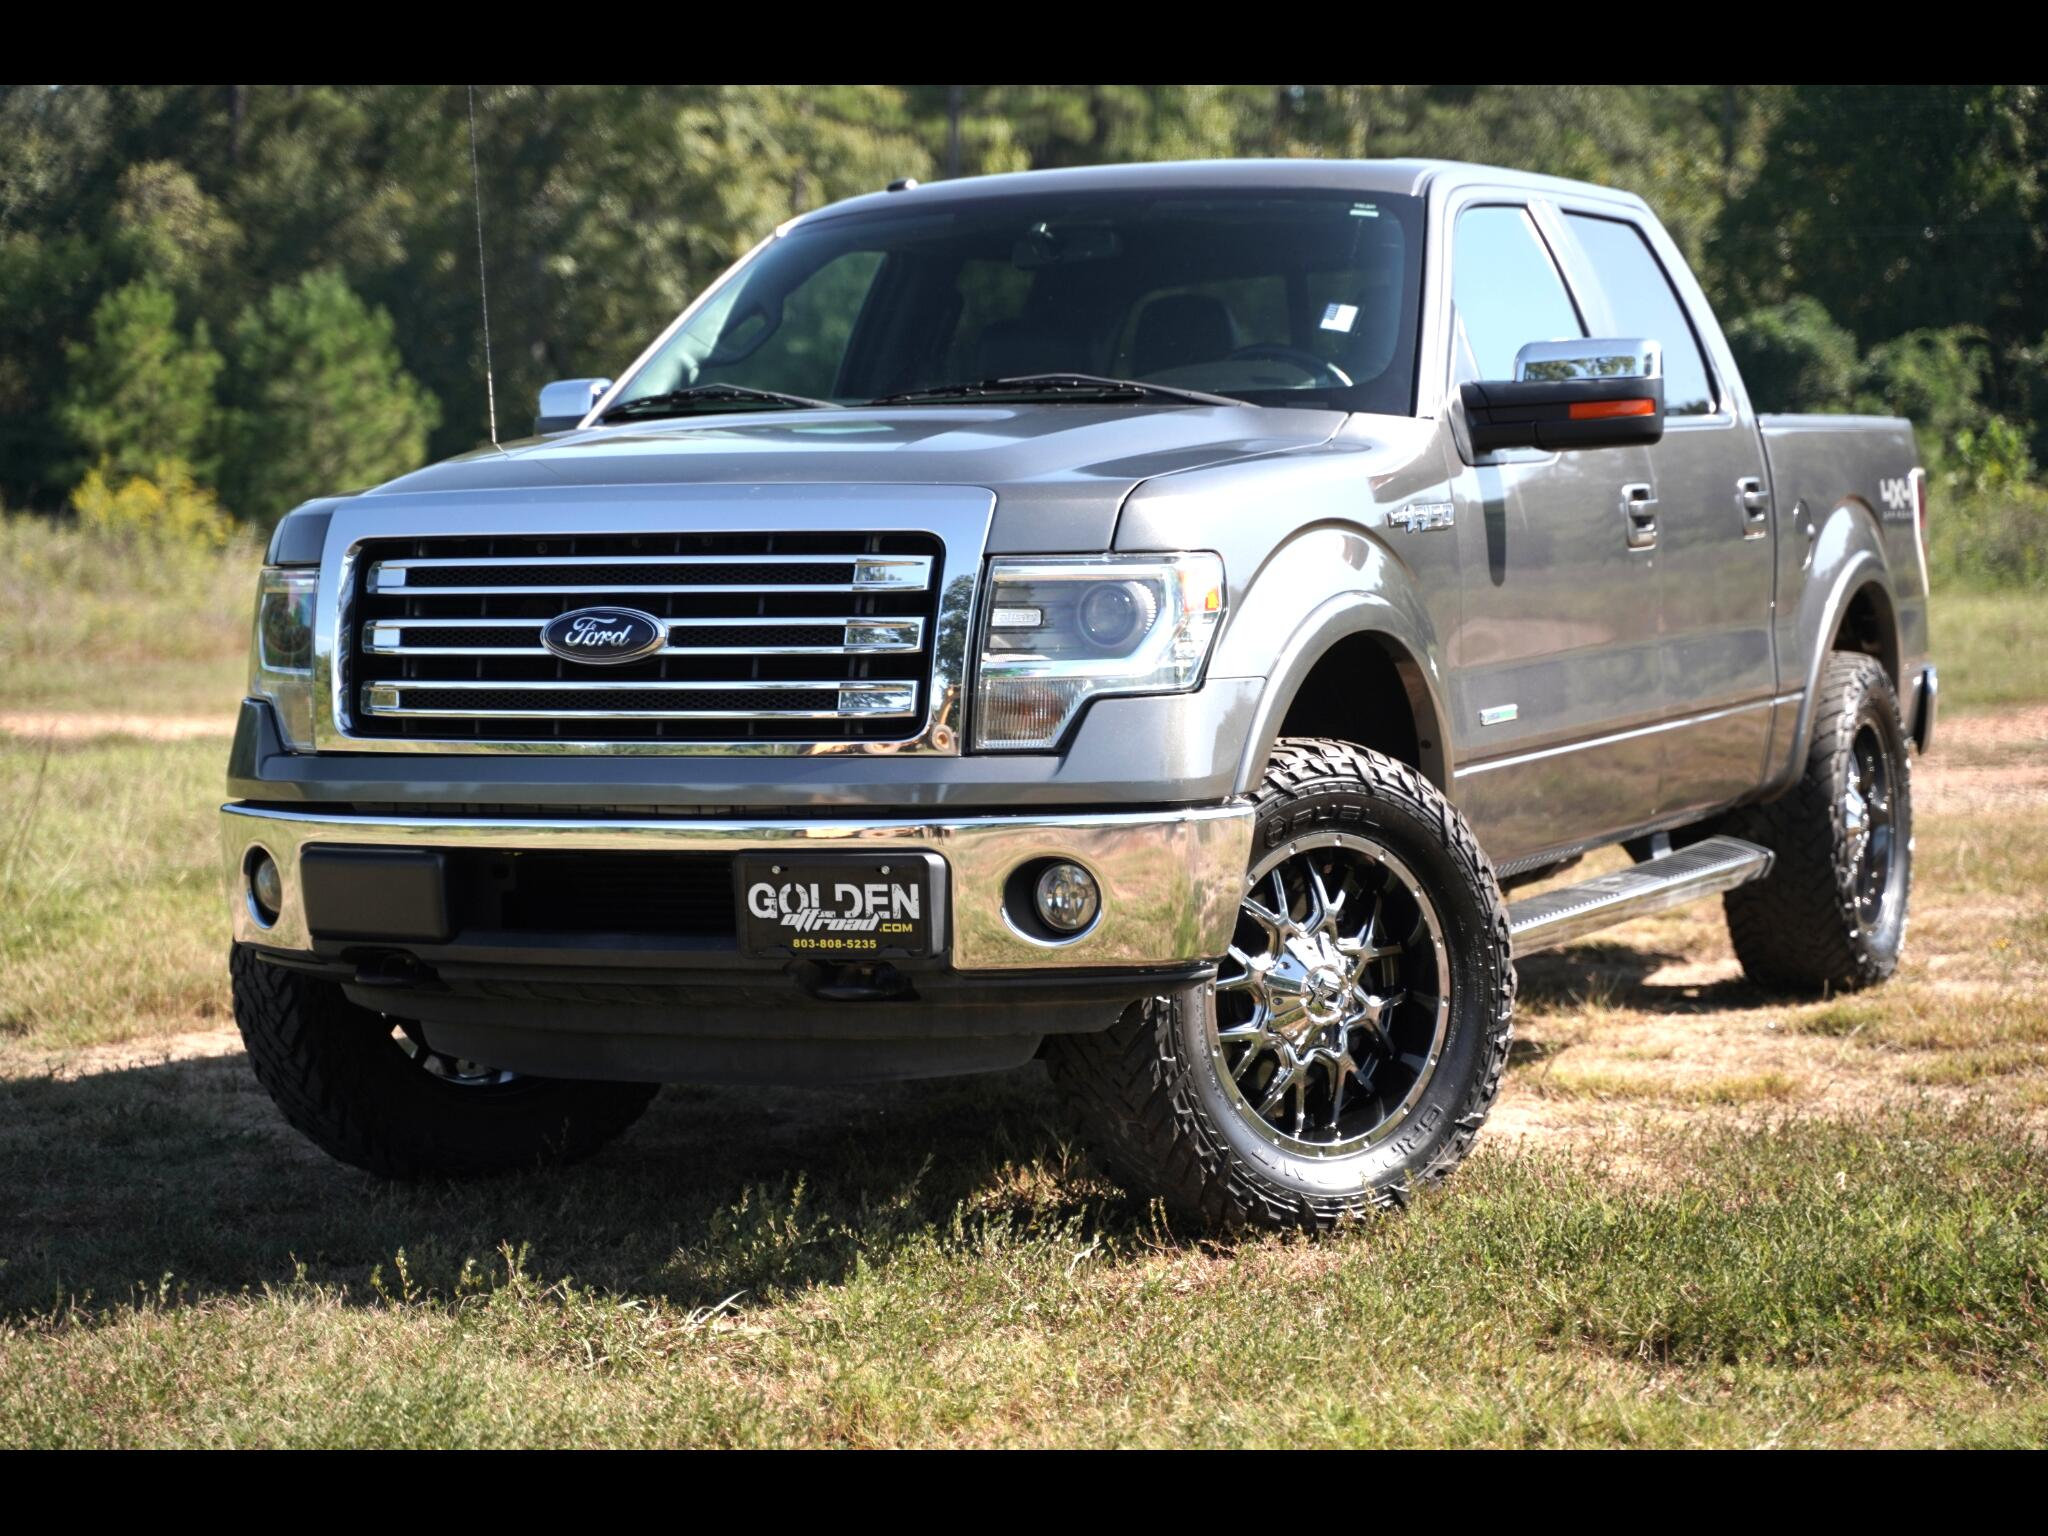 2013 Ford F-150 Lariat 4wd Lifted SuperCrew Upgrades EcoBoost